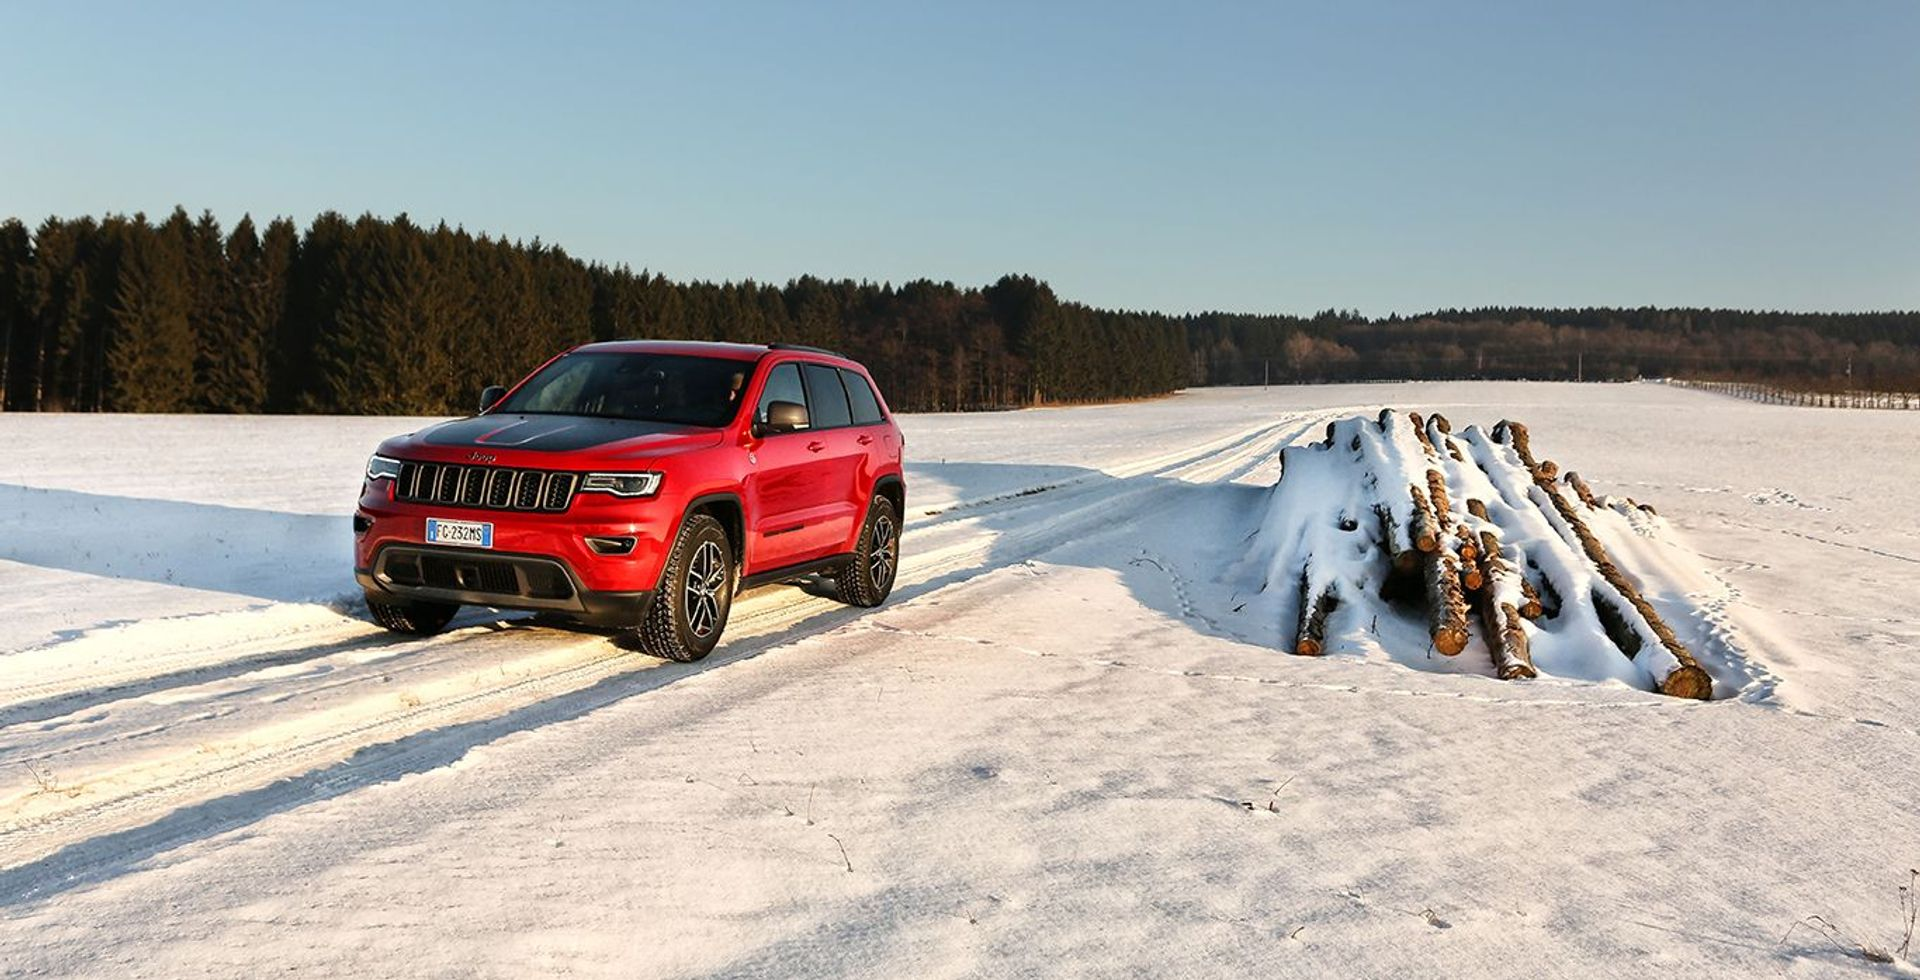 Jeep Grand Cherokee Trailhawk image